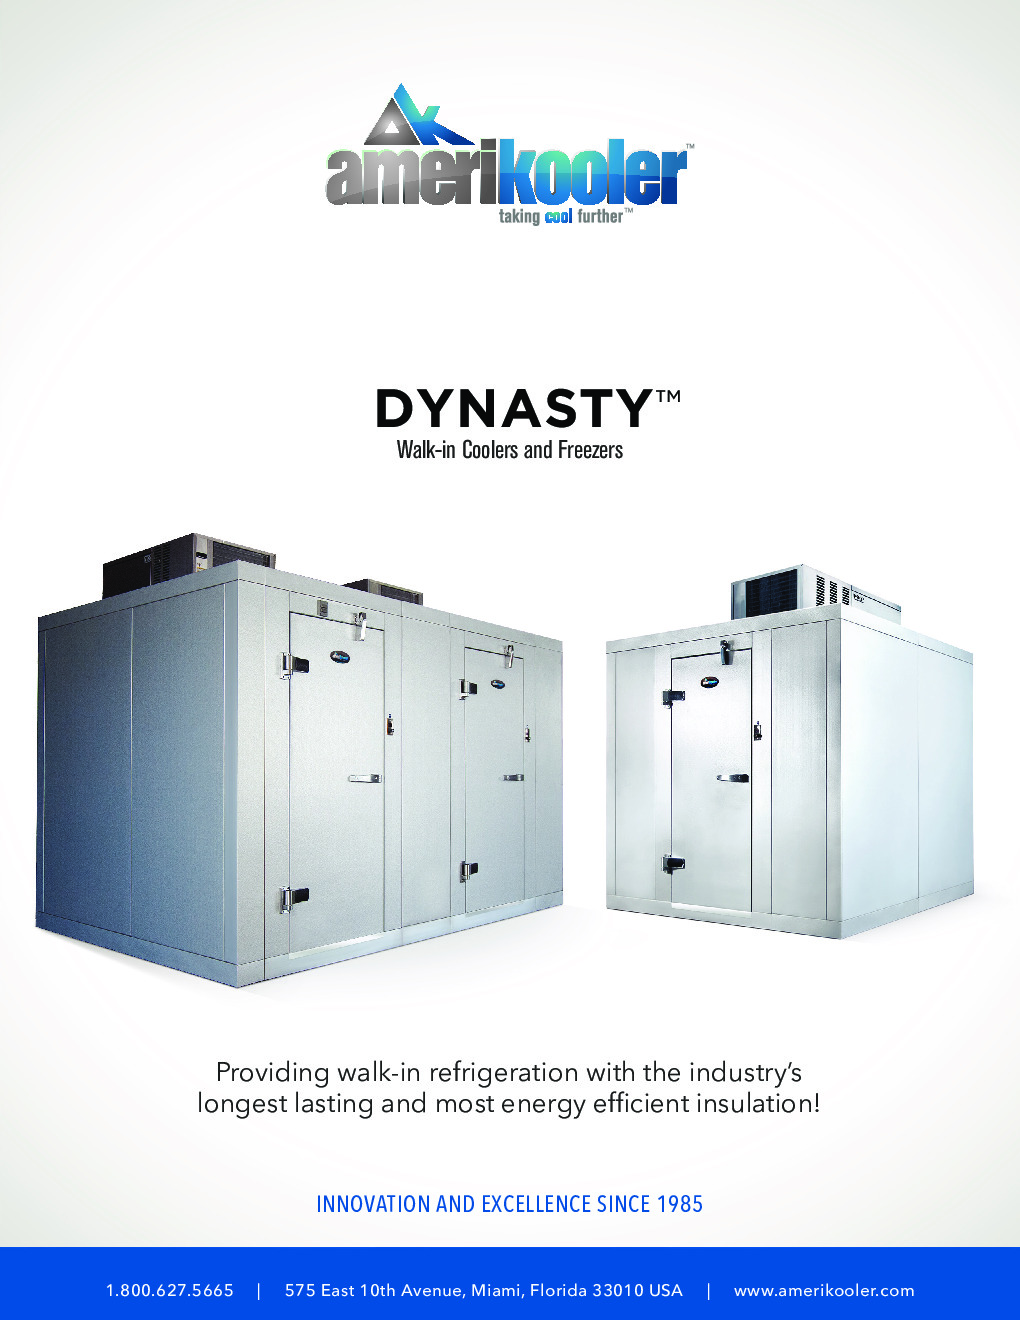 AmeriKooler DW091877N-5/13 Indoor 9' X 18' Walk-In, 13' L Cooler without Floor and 5' L Freezer, Box Only